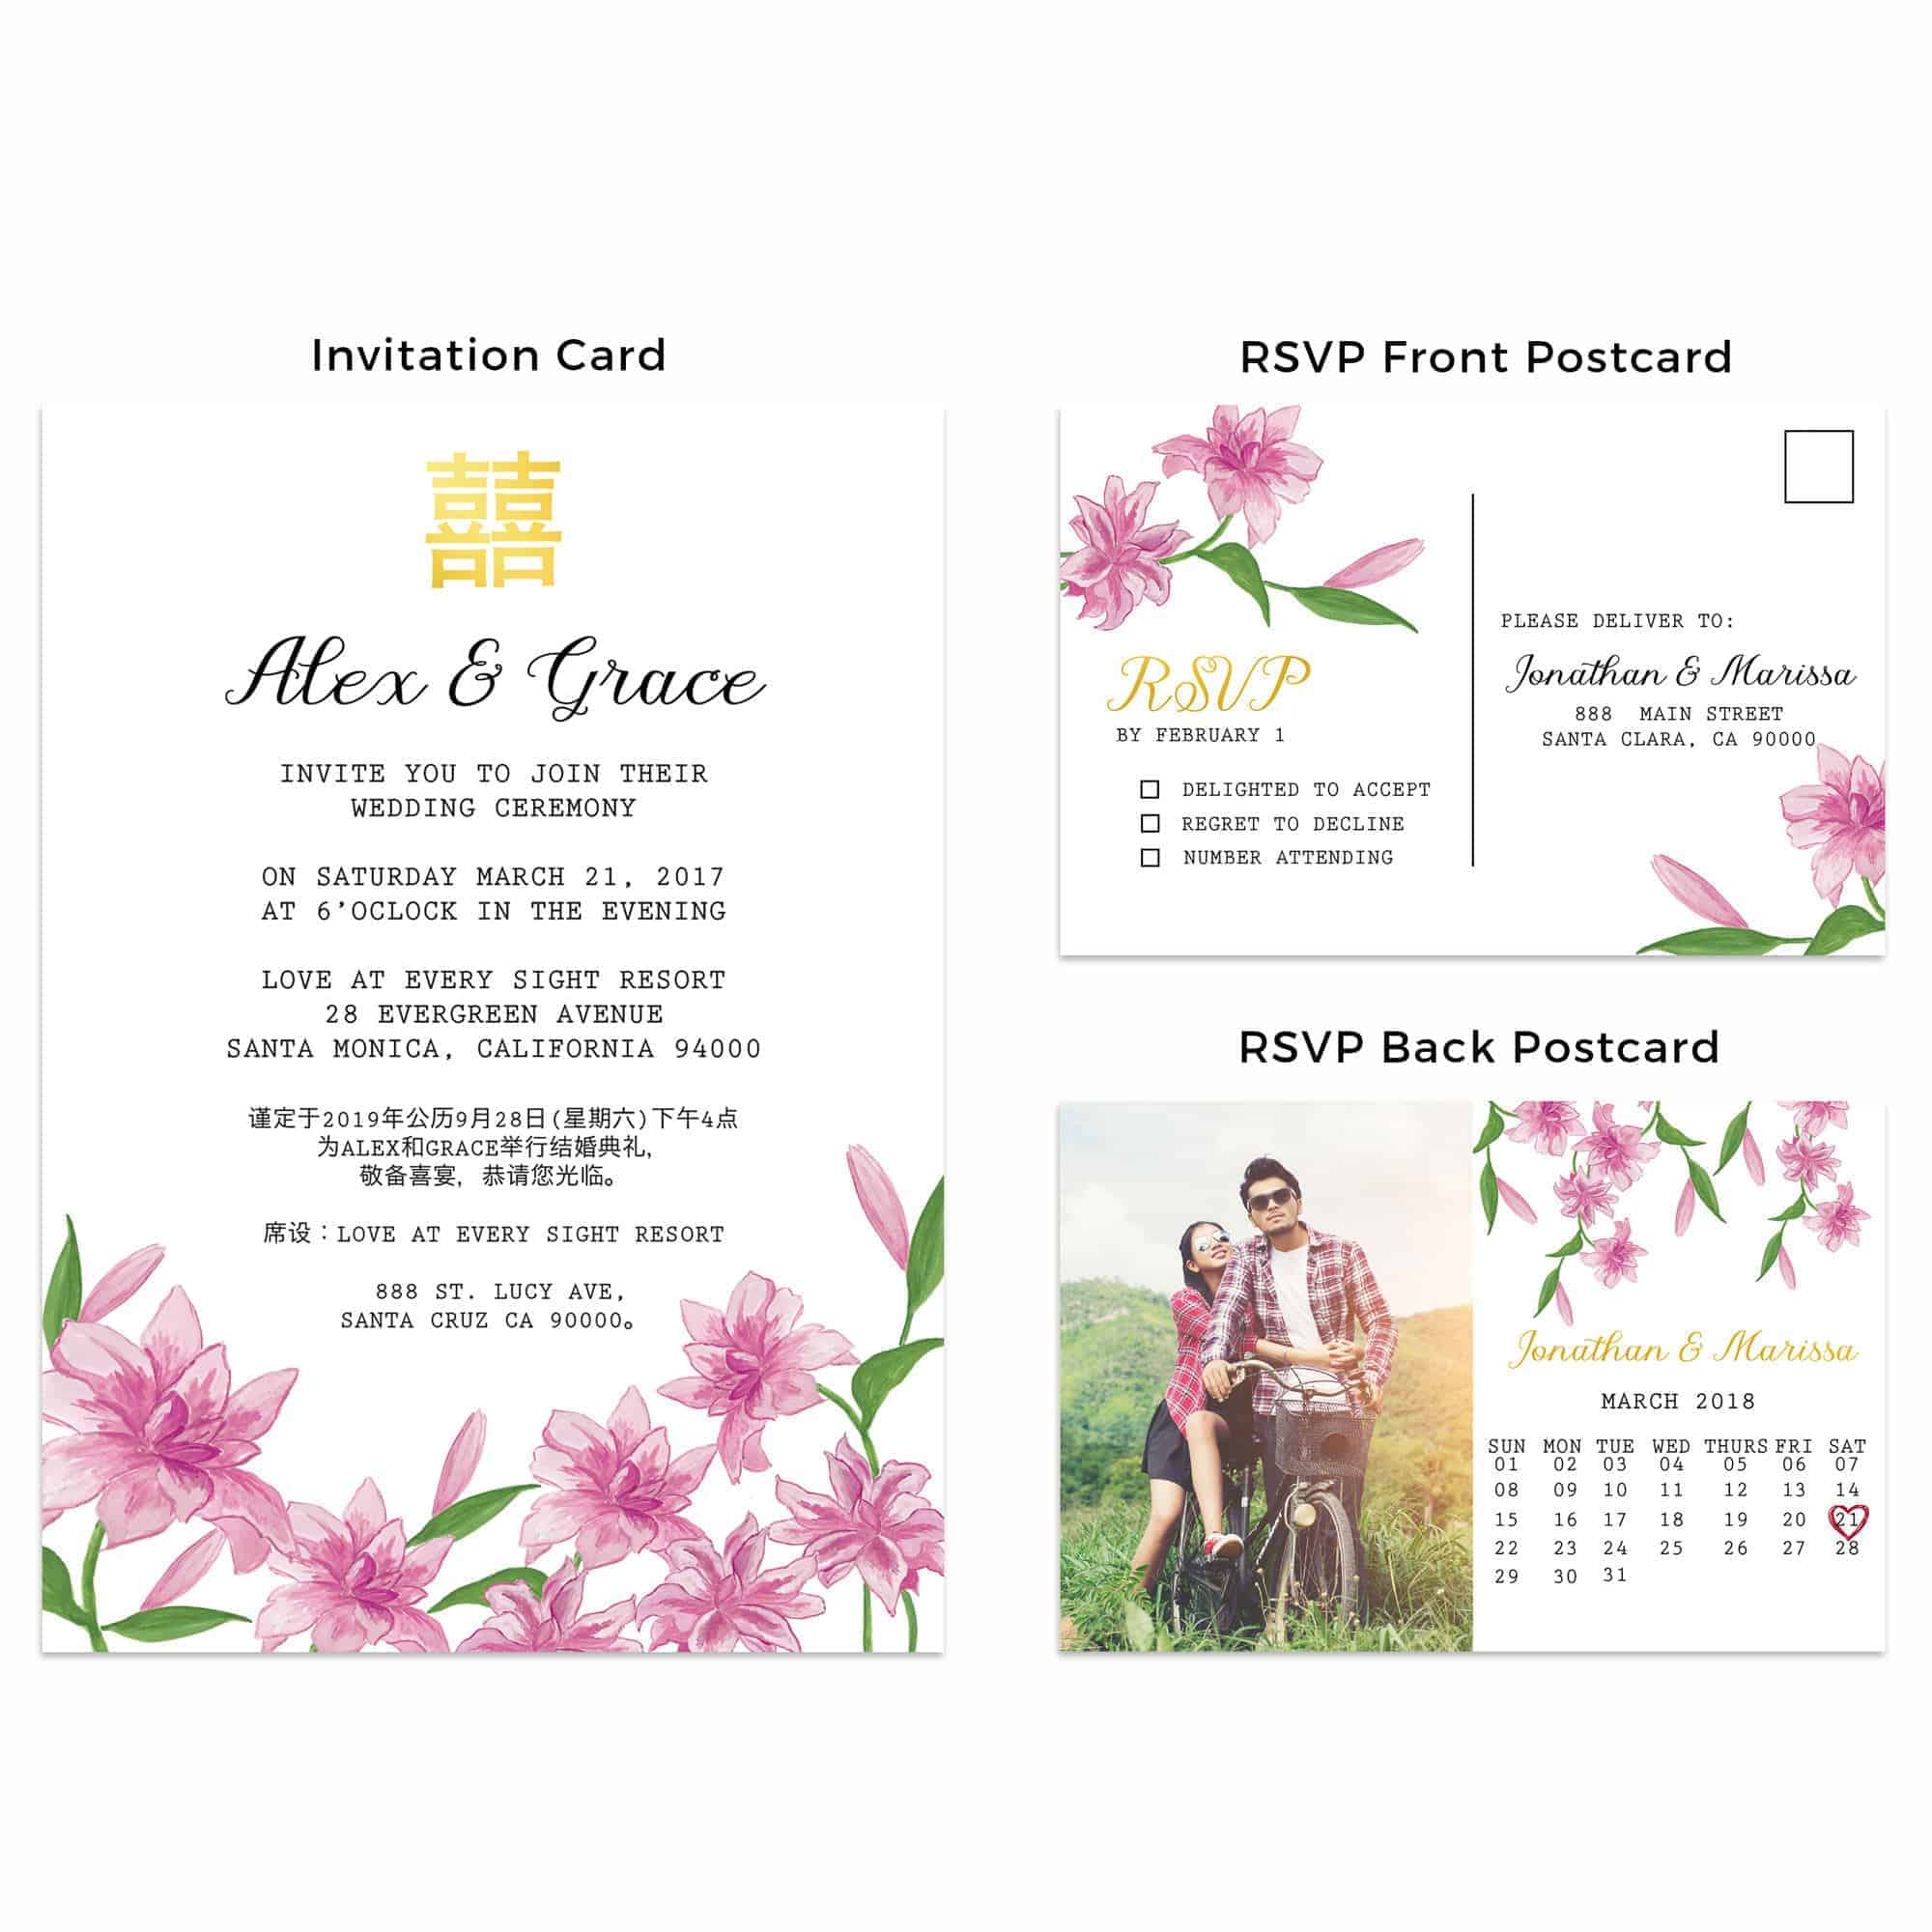 Chinese Wedding Invitation Cards with RSVP postcards,Lilies Wedding Invitations Cards, Cheap Wedding Invitations